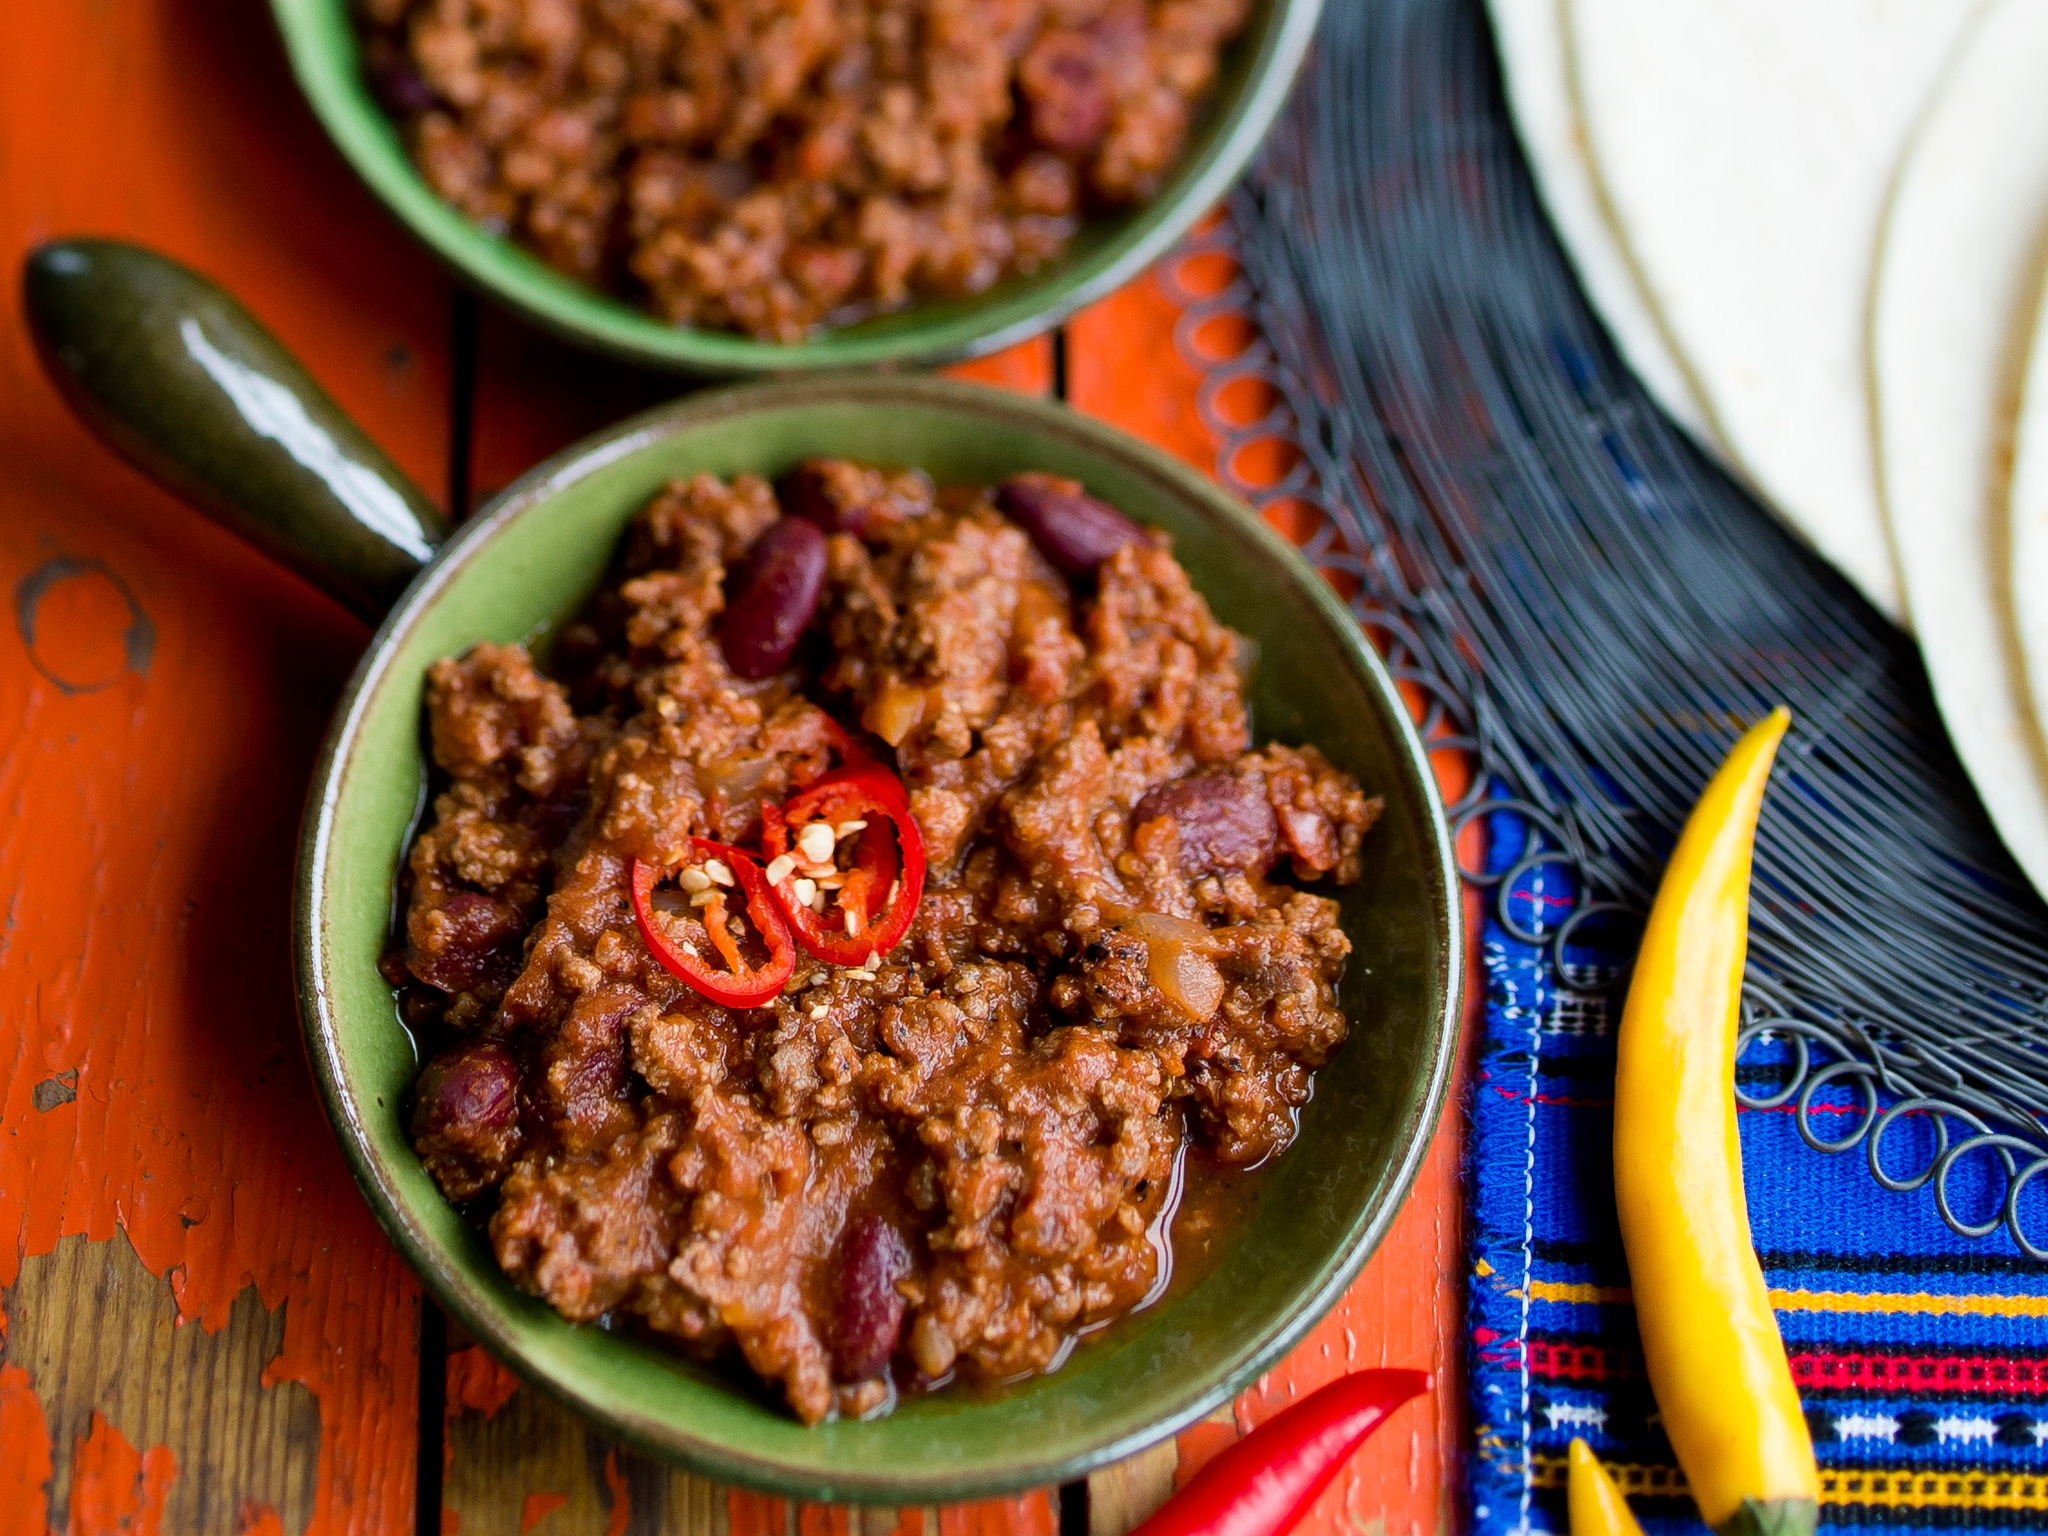 190031-chiliconcarne.jpg